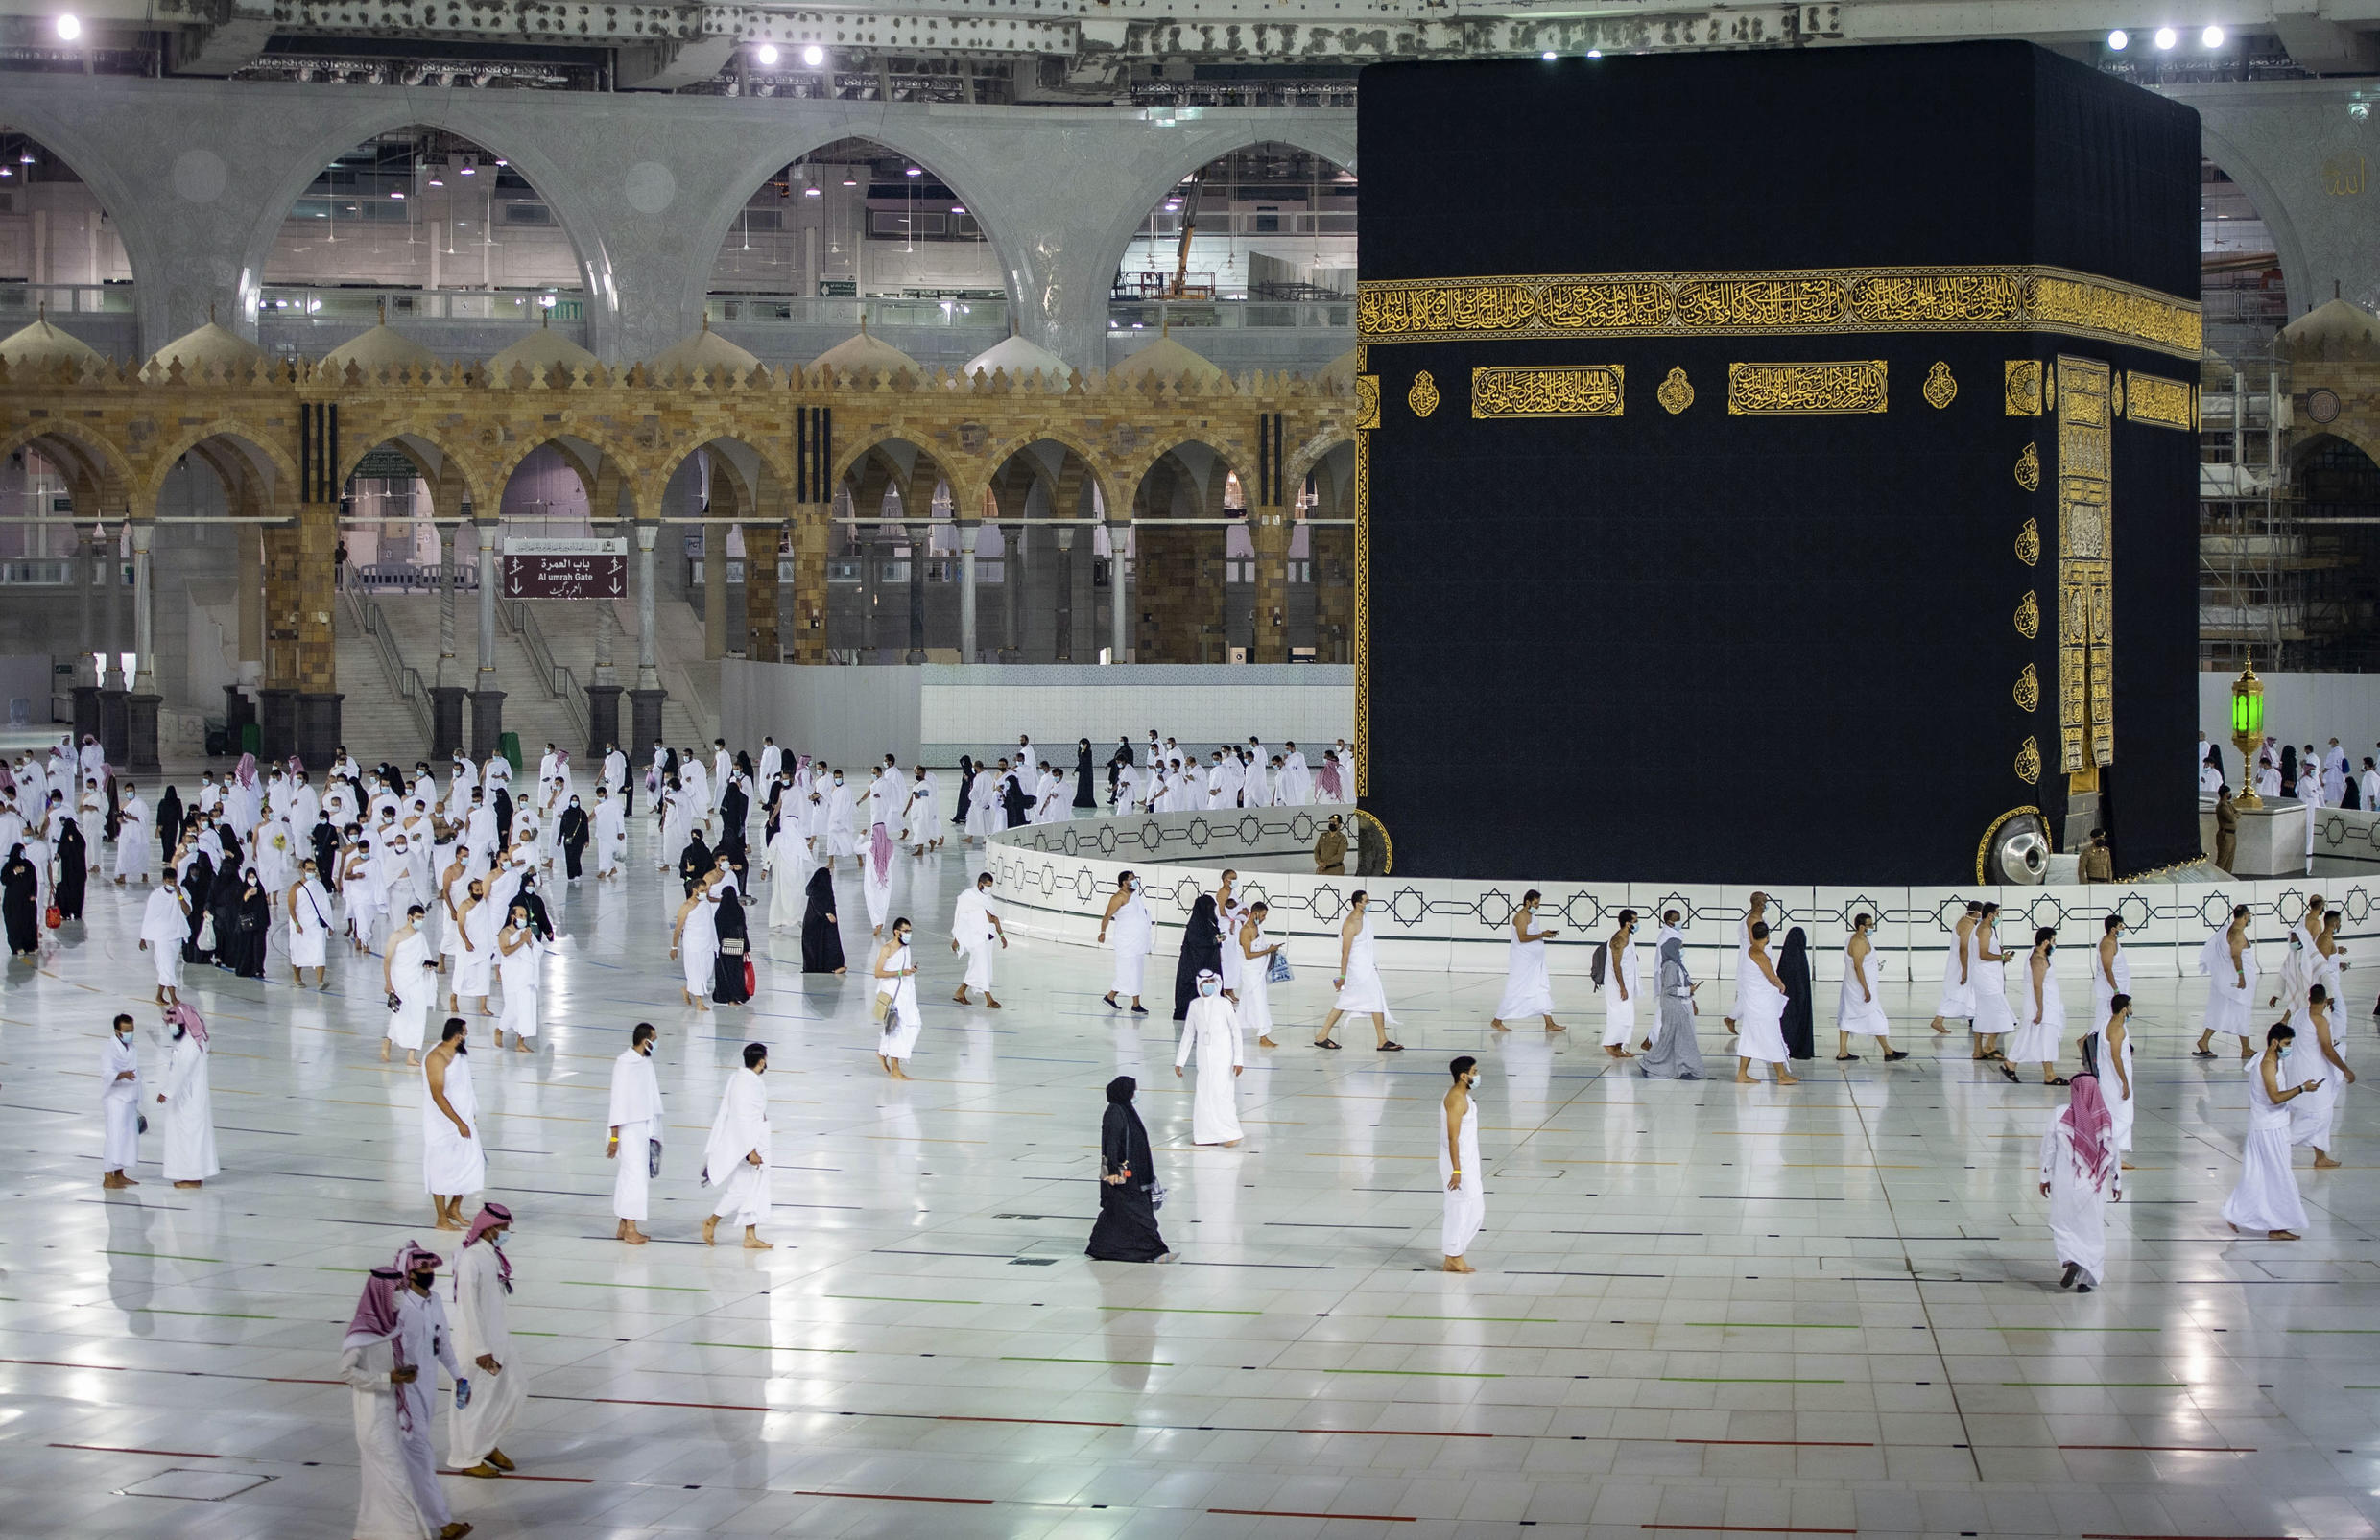 Saudis and foreign residents circumambulate the Kaaba (Tawaf) in the Grand Mosque complex in the Muslimholy city of Mecca